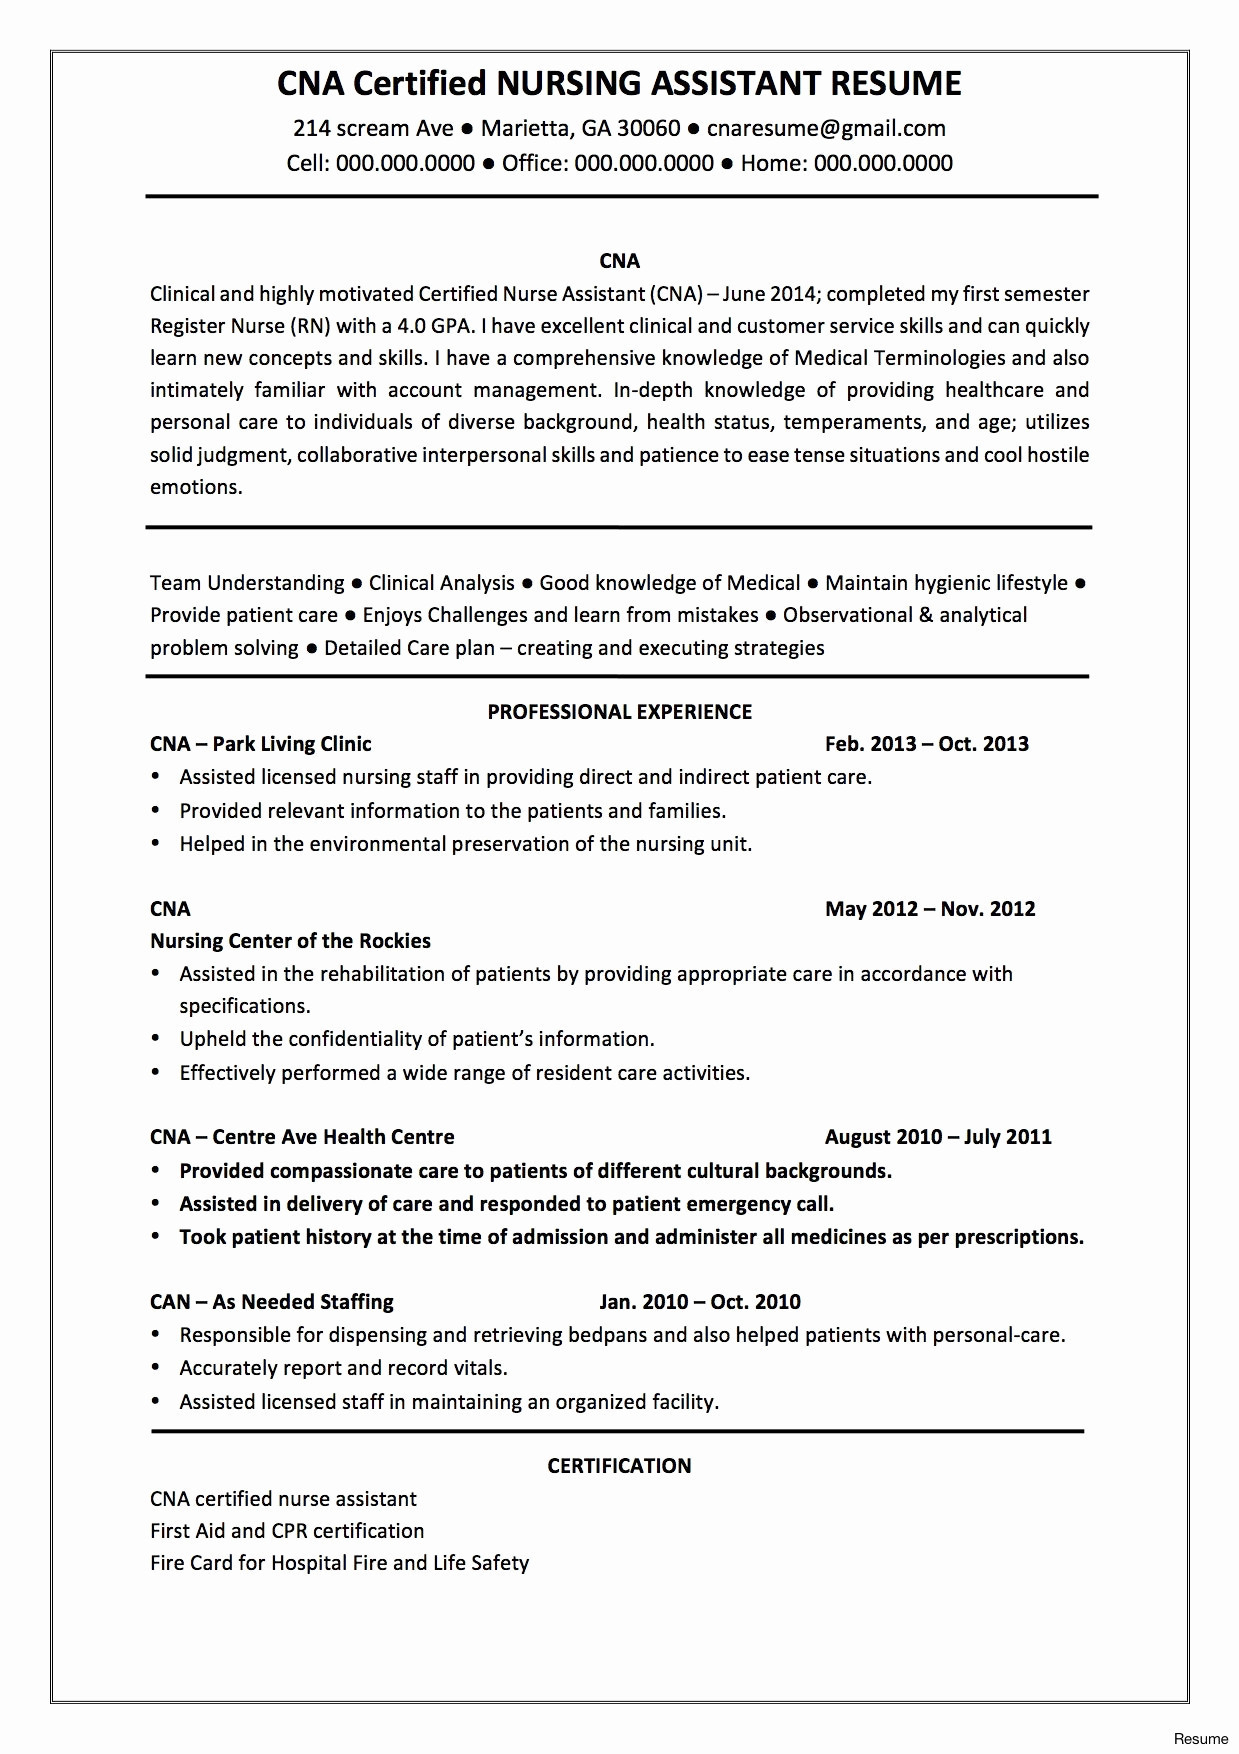 Functional Executive Resume - Free Download Resume format In Ms Word Elegant Admin Executive